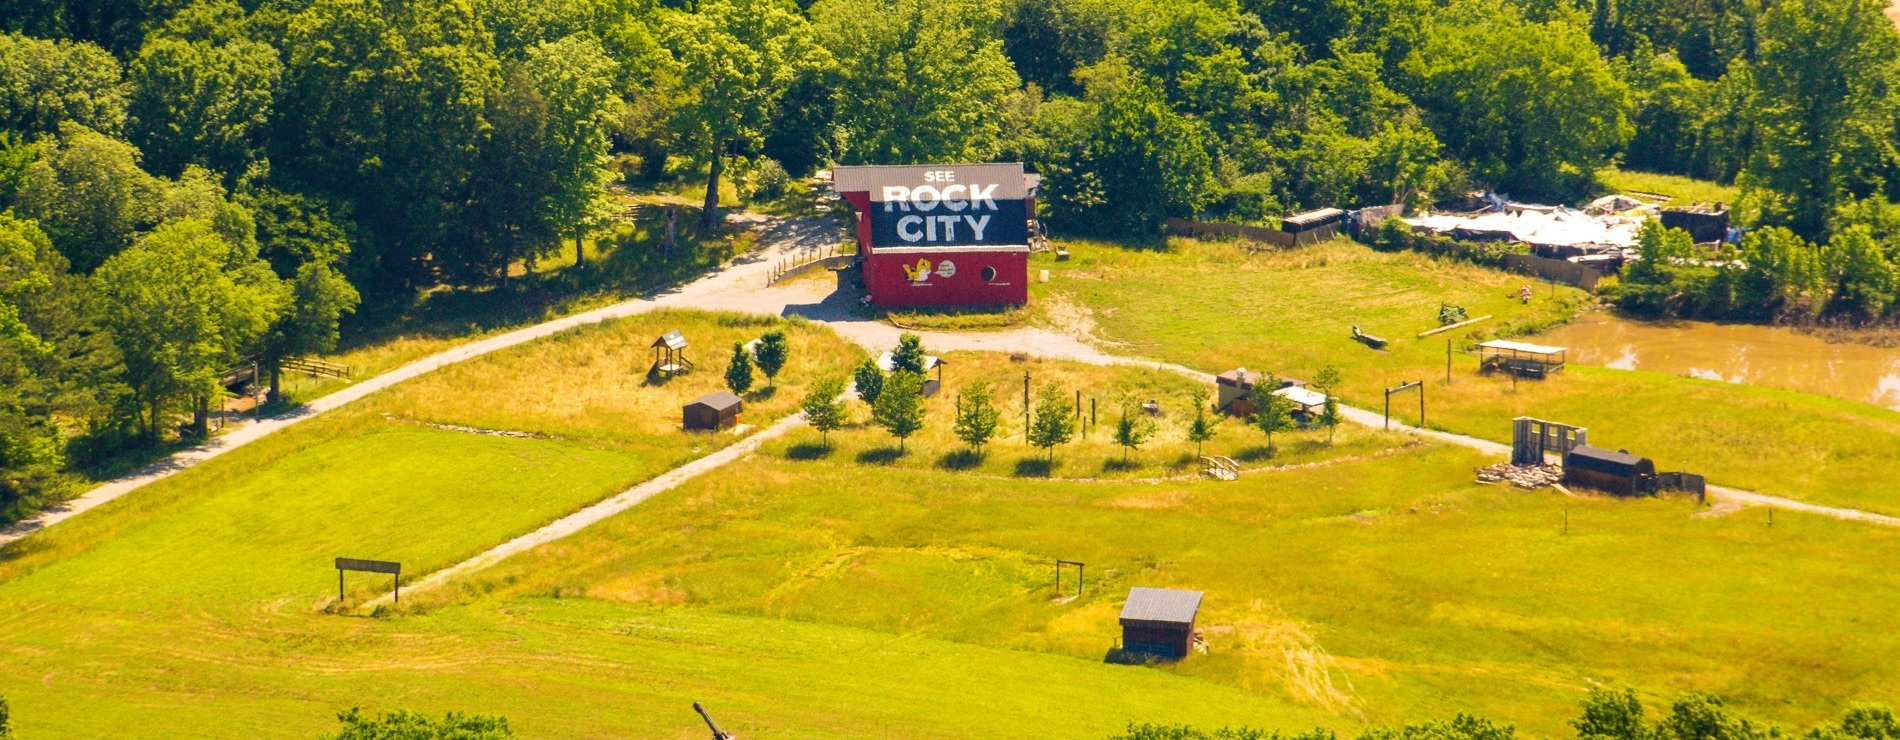 Dadtography Roadtrip – See Rock City, Tennessee